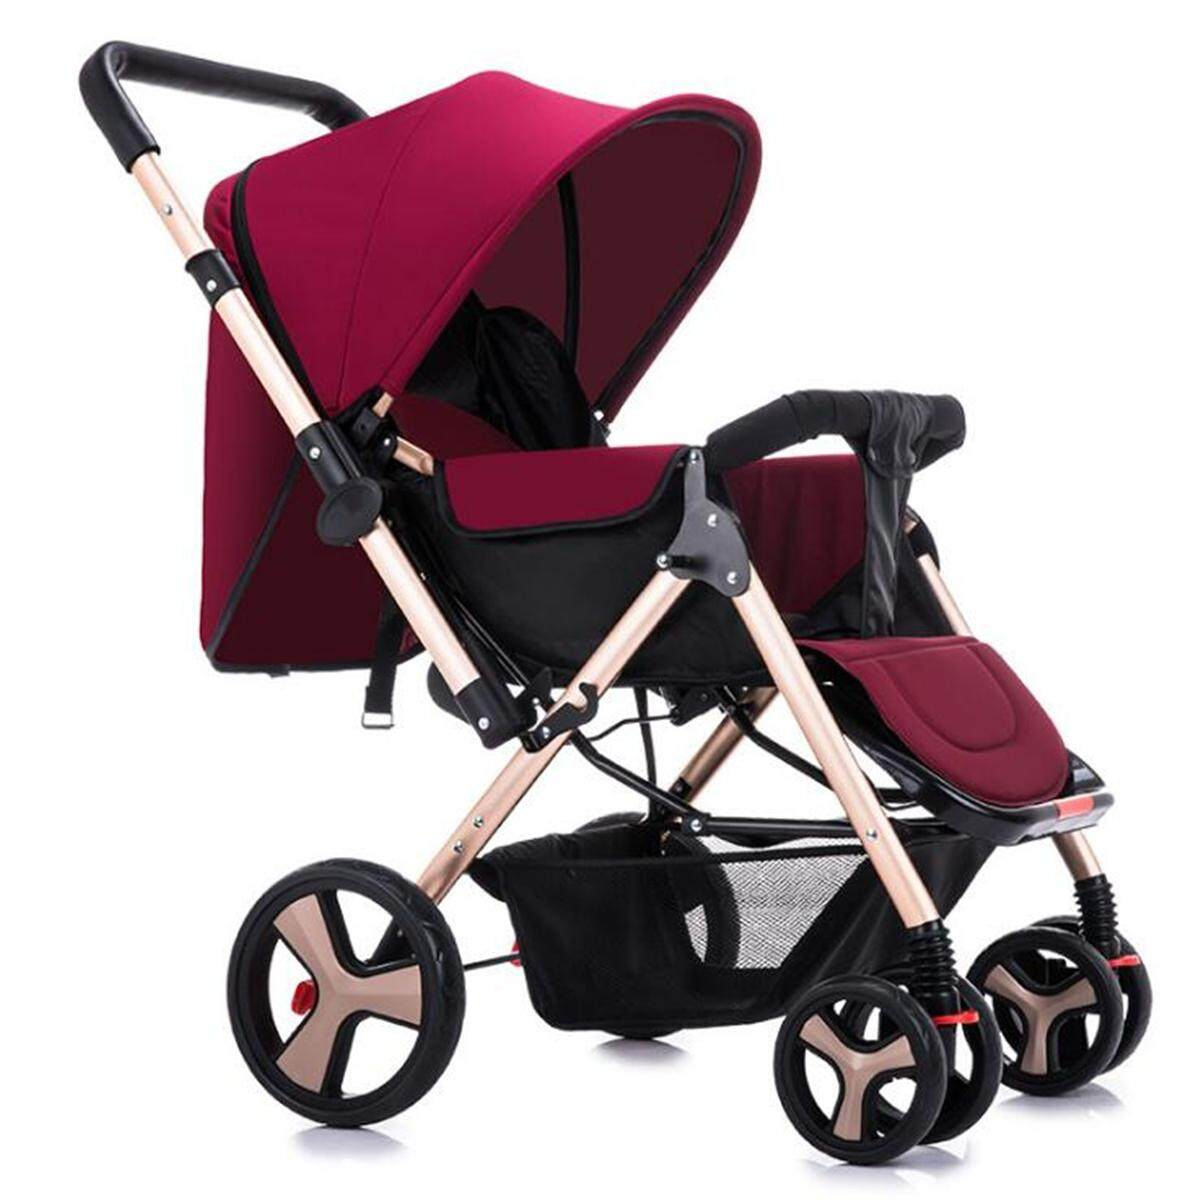 Foldable Baby Stroller Carriage Infant Cart Pushchair Sitting Lying Outdoor Tool